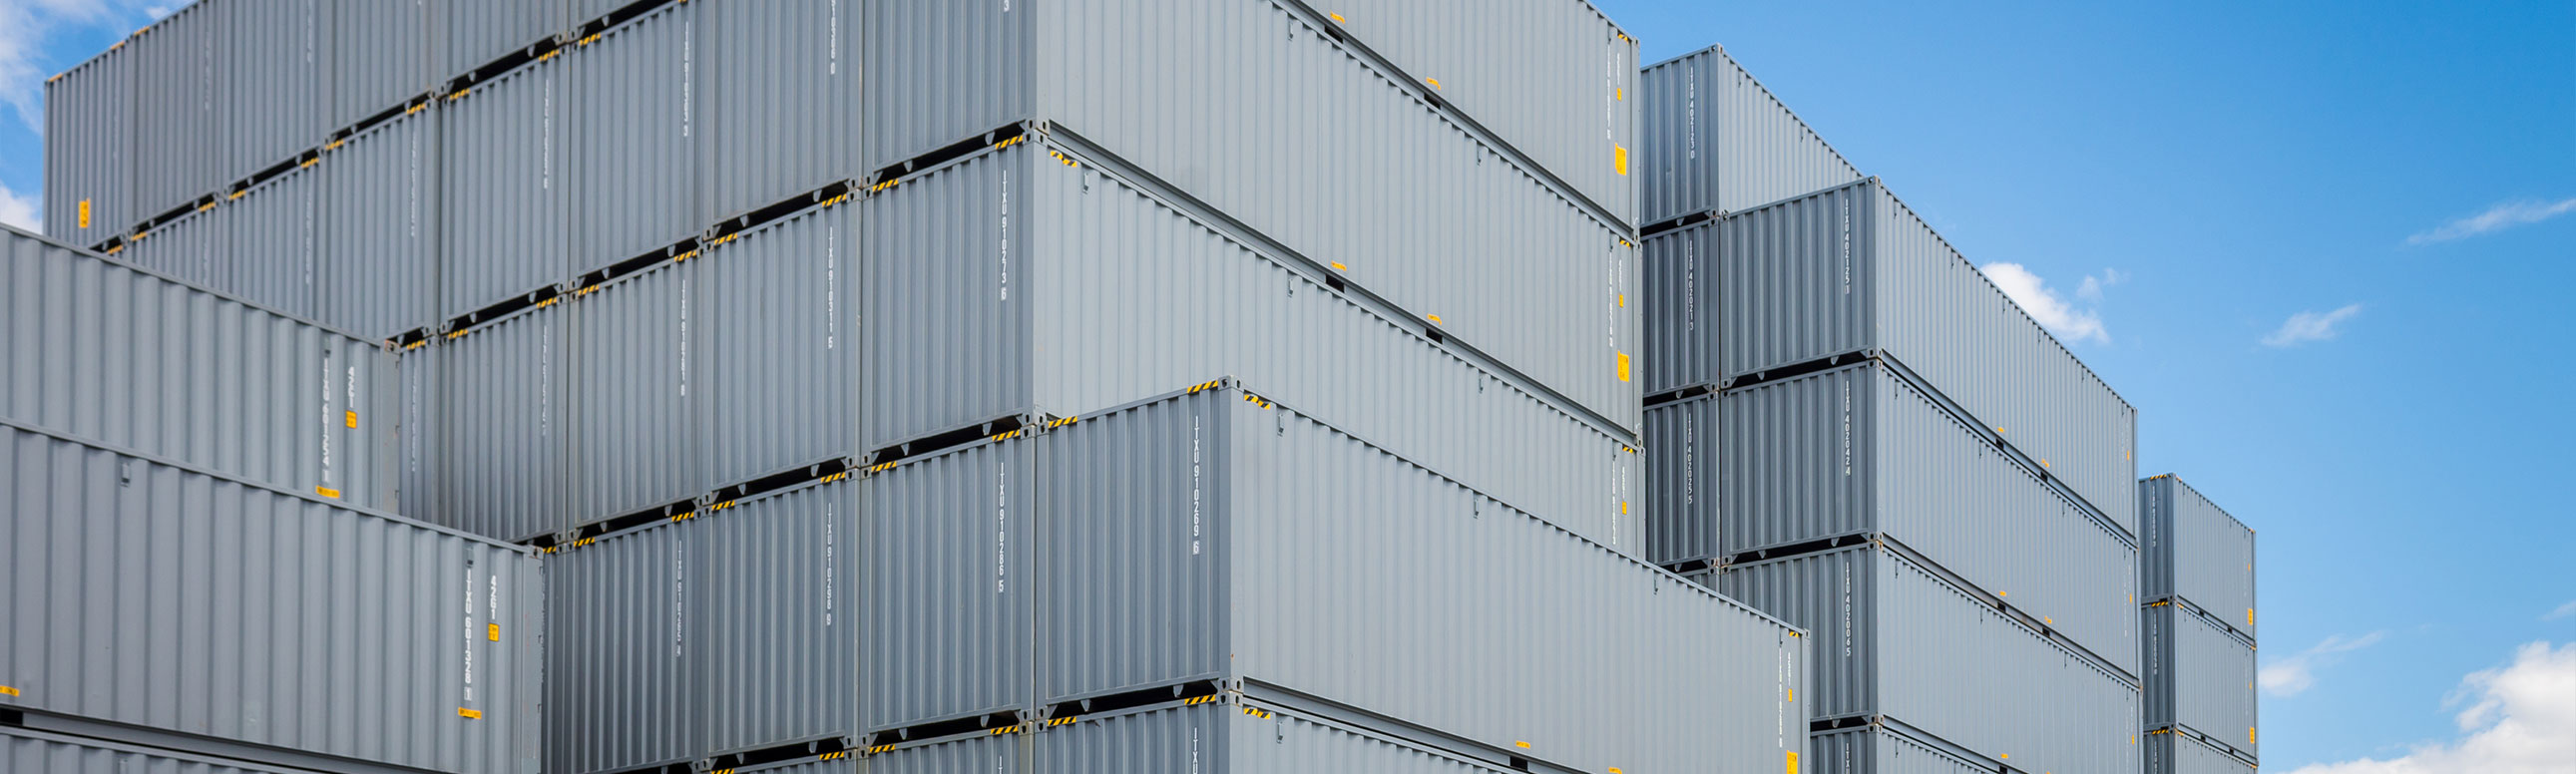 Rent To Own Storage Containers Part - 33: Interport Makes It Easy As 1-2-3!